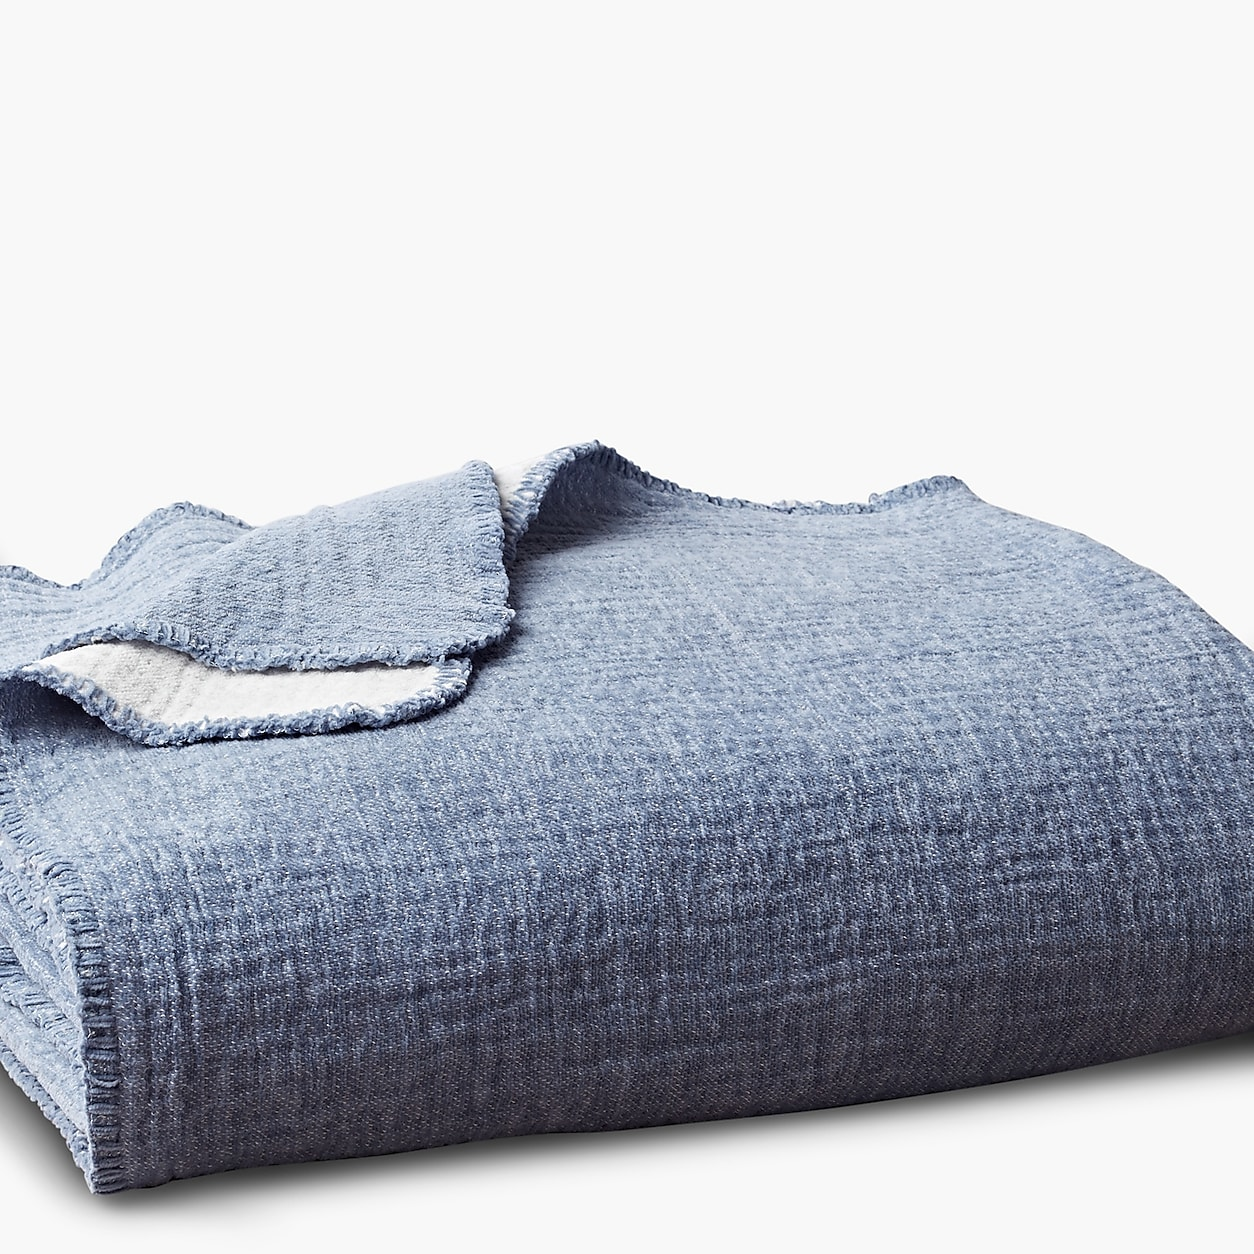 Clothes Shoes Accessories For Women Men Kids Organic Blankets Coyuchi Cozy Throws